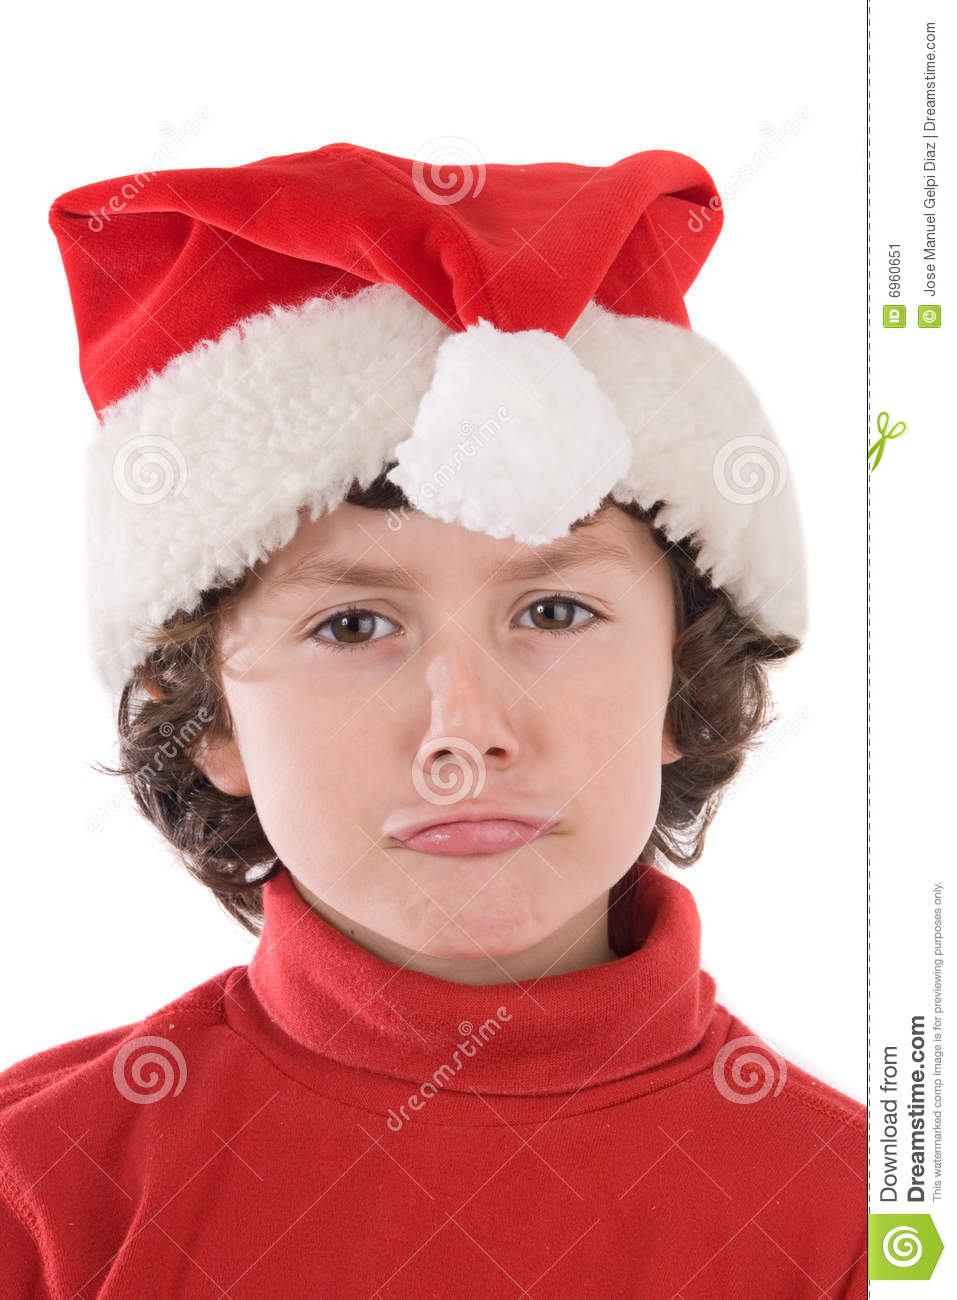 Funny Boy With Red Hat Of Christmas Pulling A Face Stock Image Image 6960651